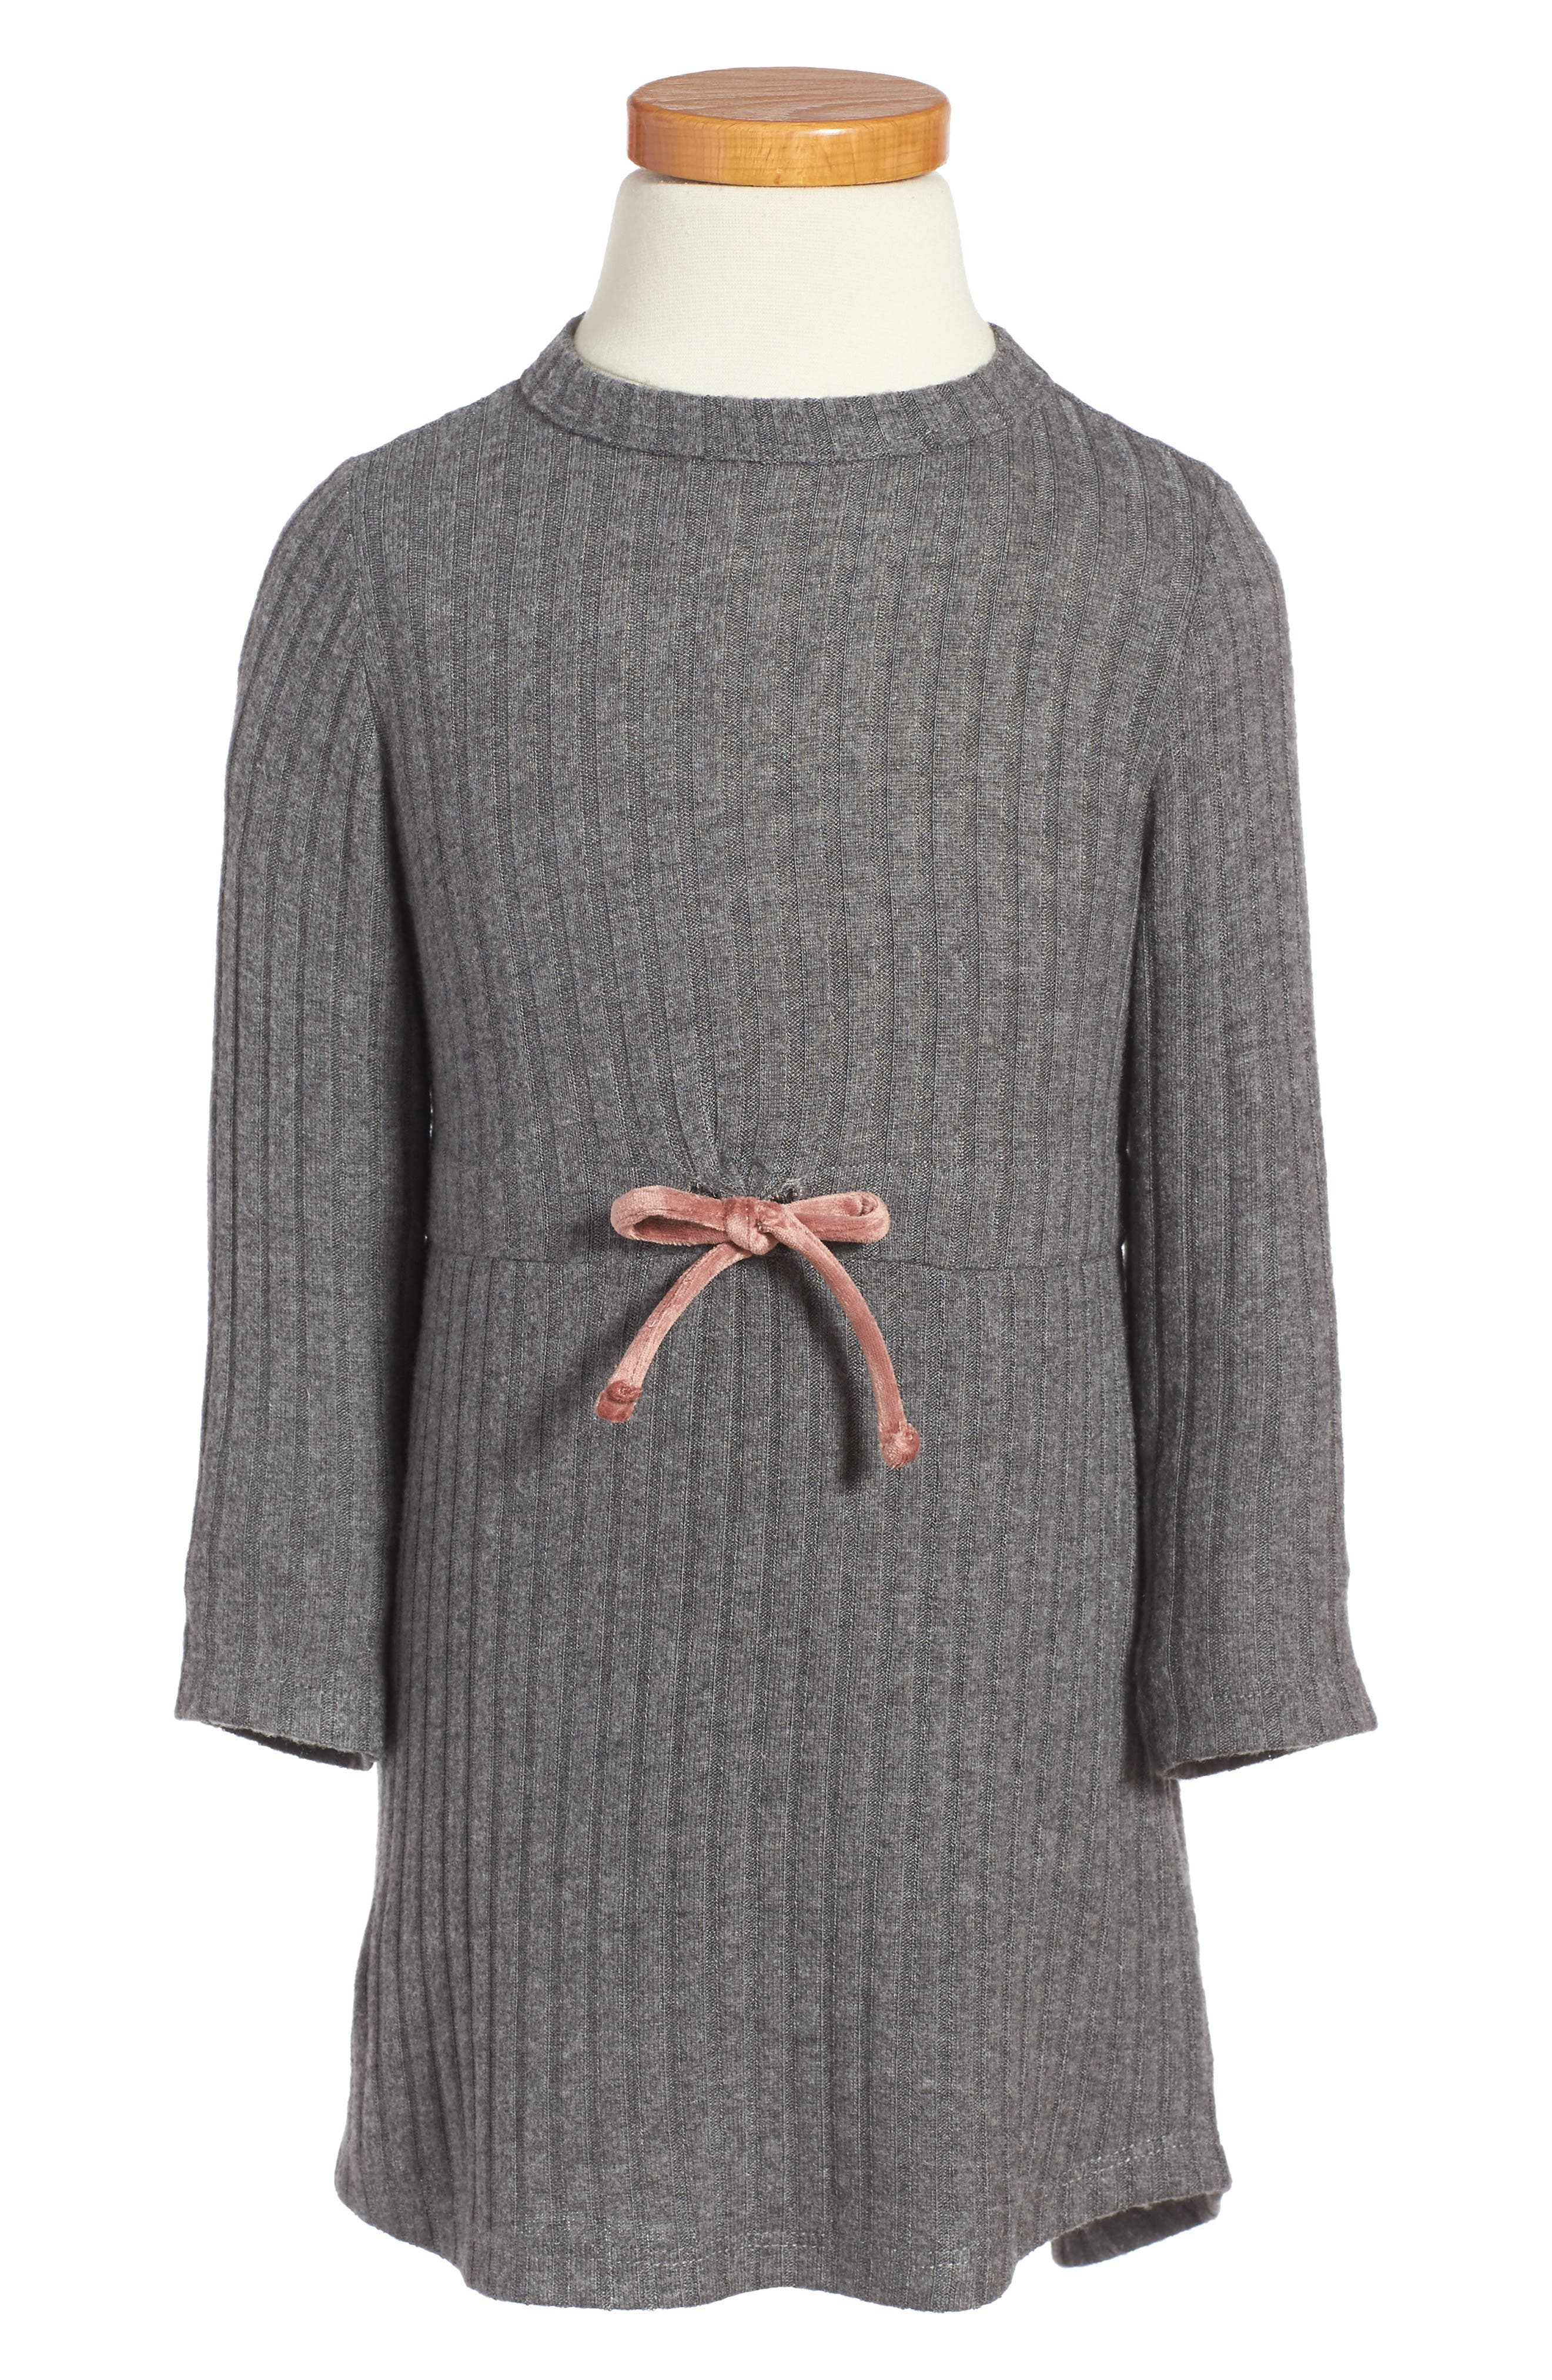 BERU Ellana Ribbed Sweater Dress (Toddler Girls & Little Girls)